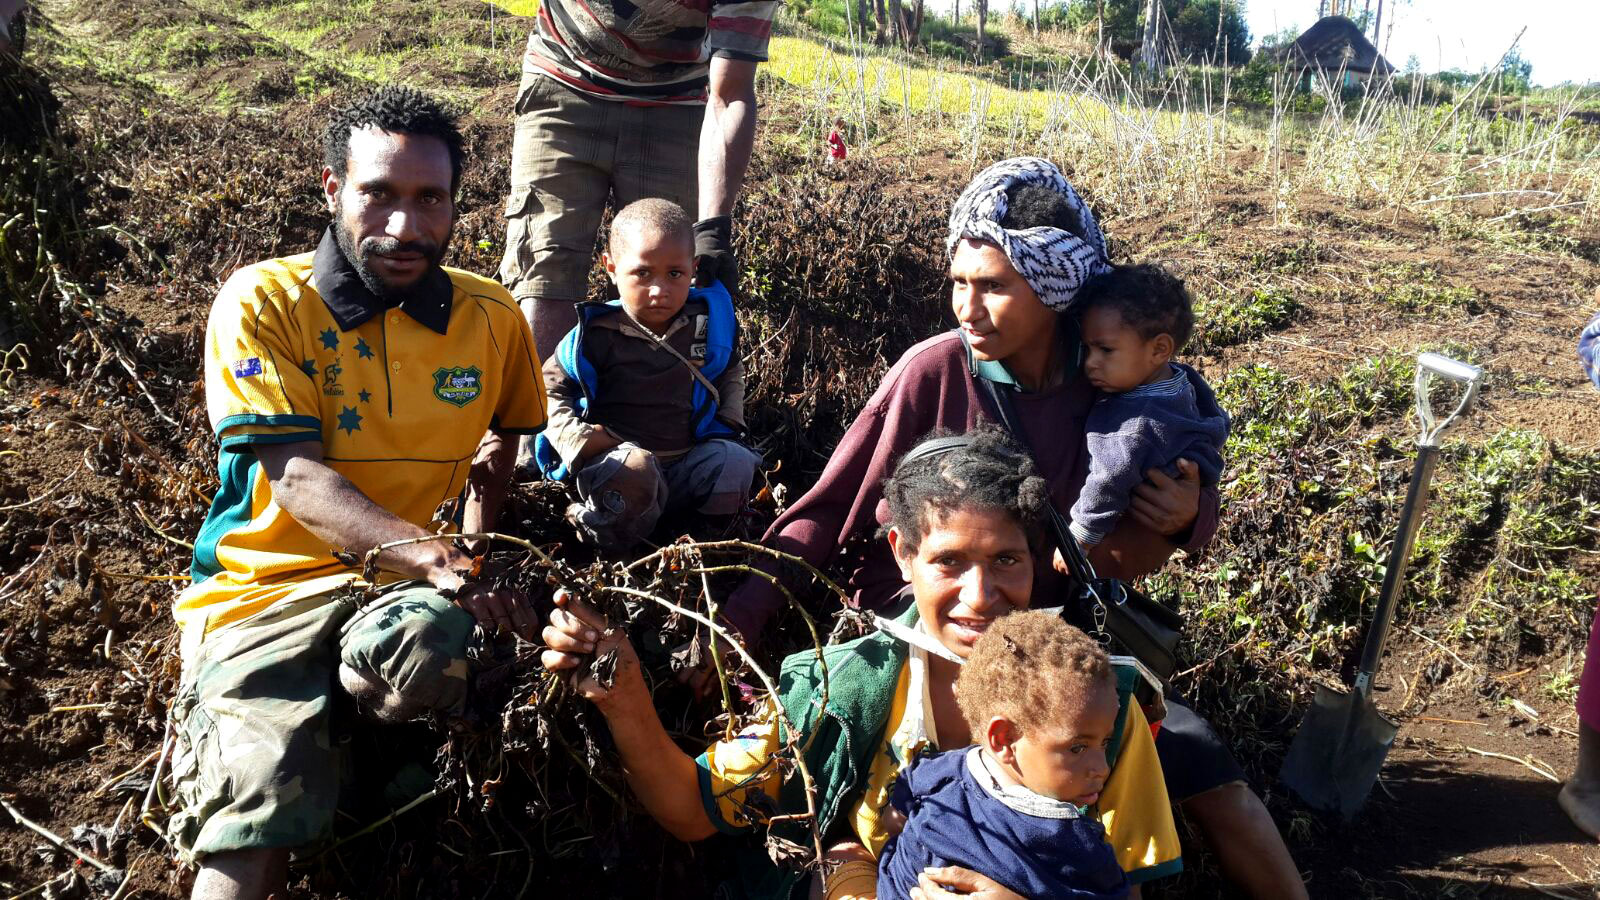 In pictures: Papua New Guinea\'s developing food crisis.